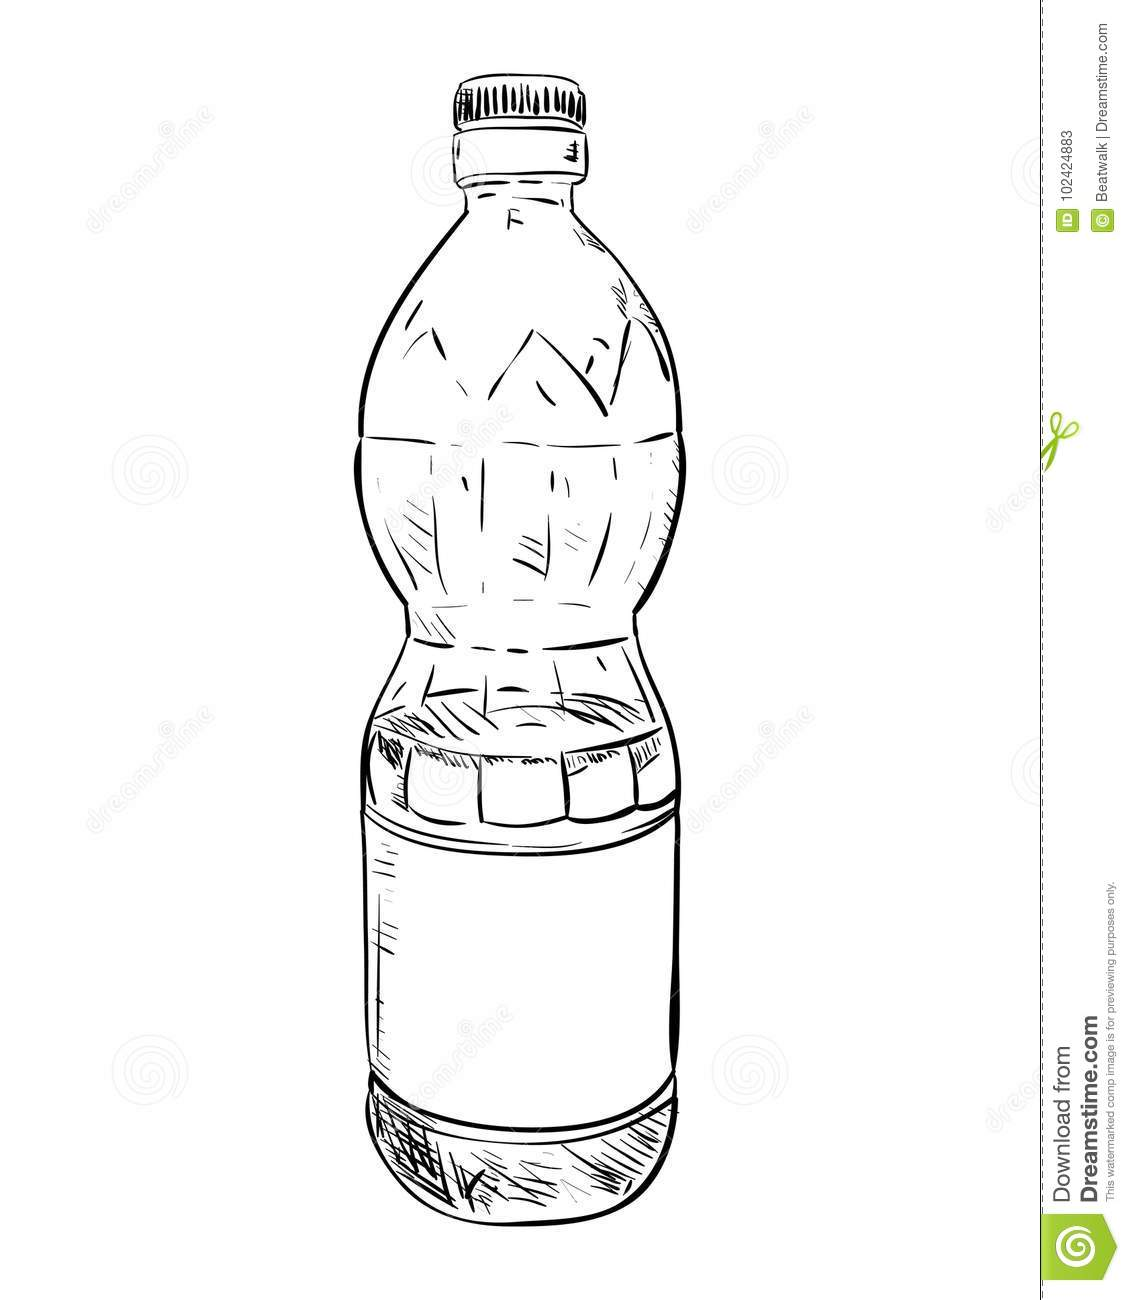 Vector sketch of plastic bottle hand draw illustration